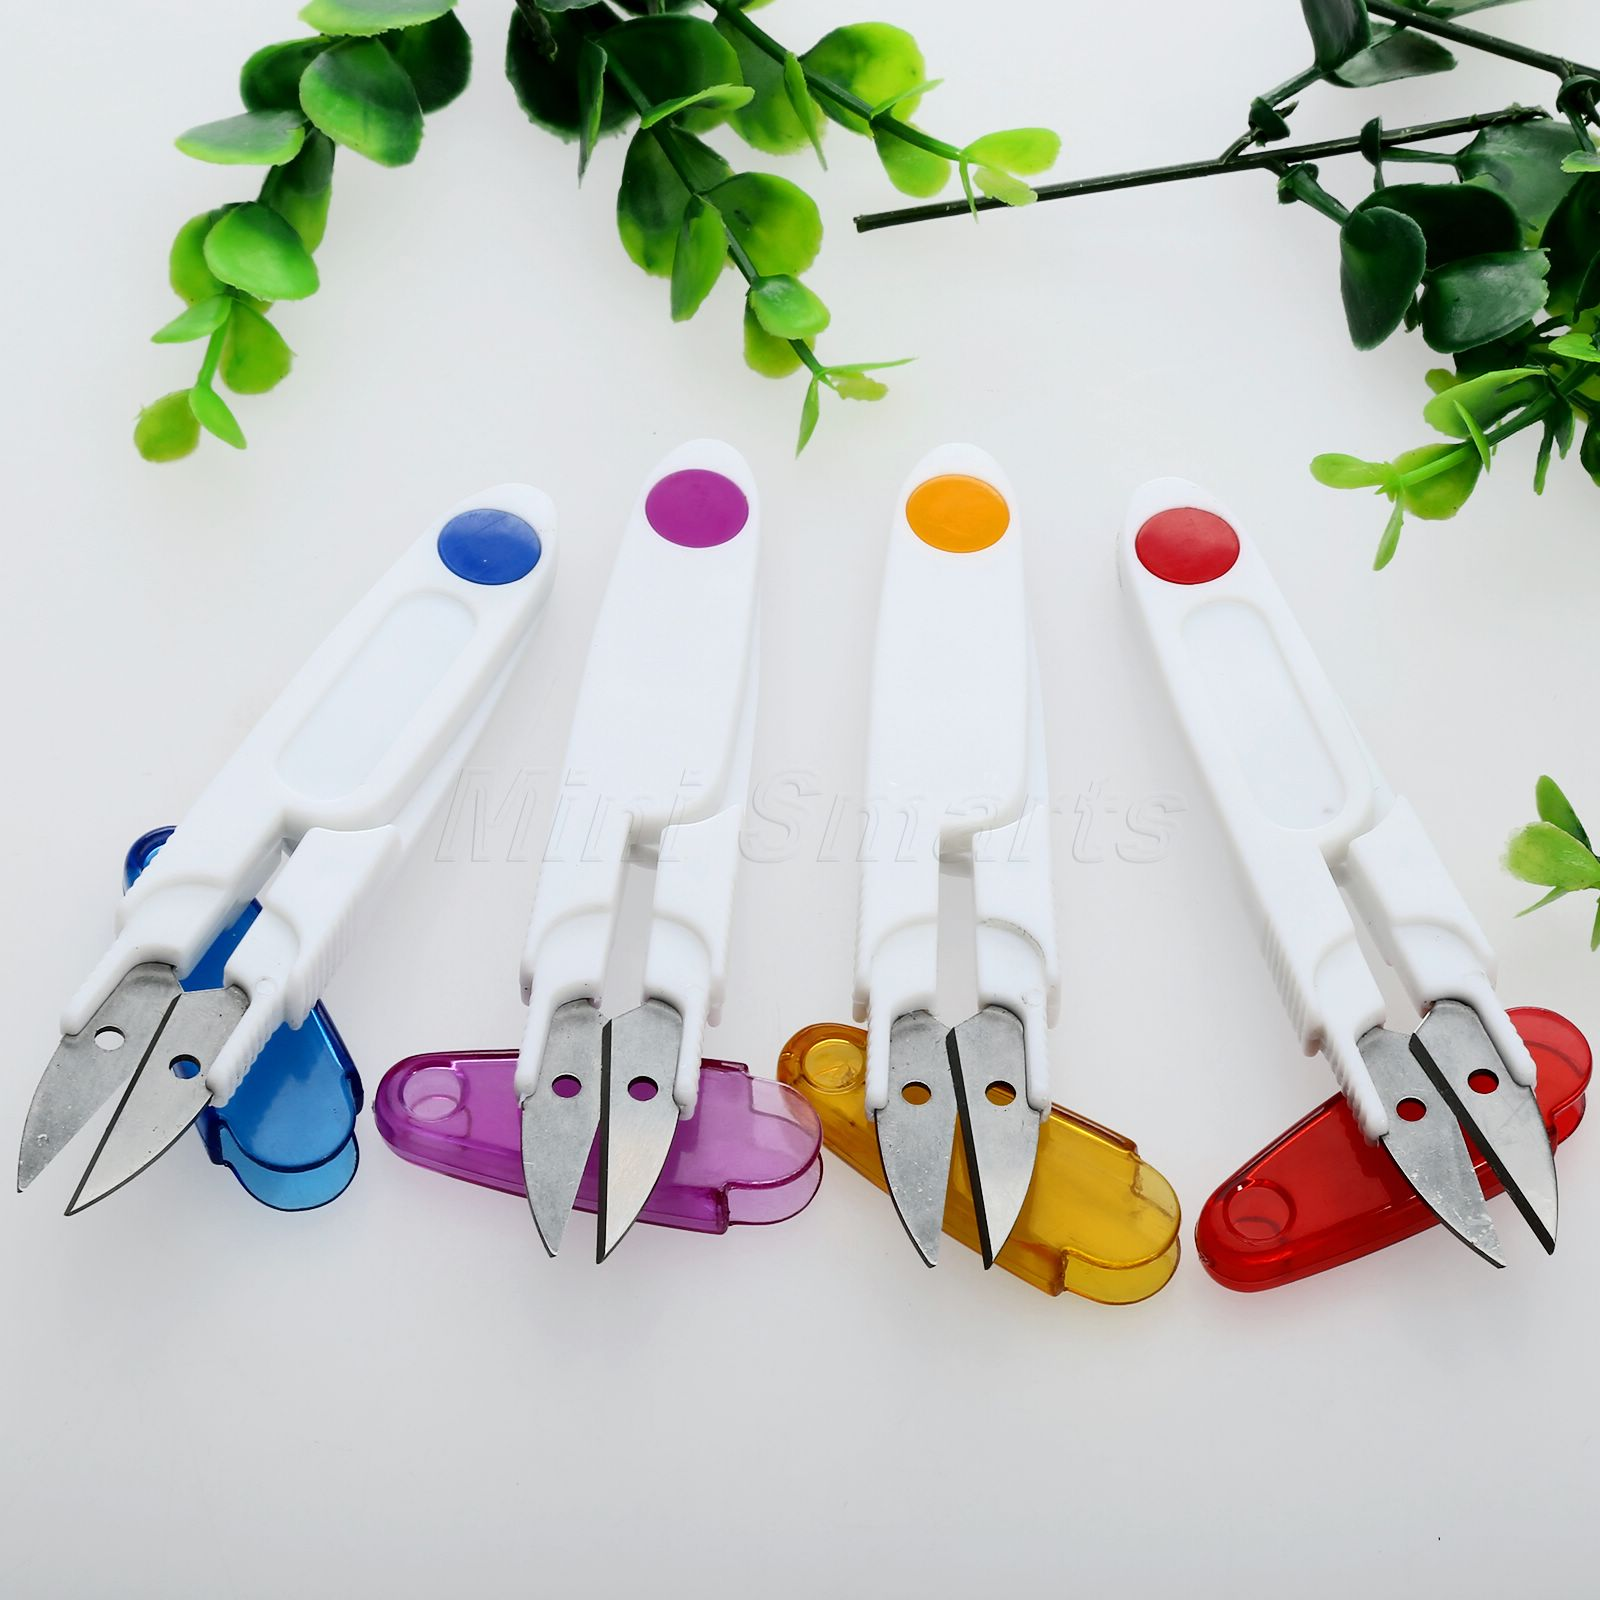 1x Red/Yellow /Purple/Blue Plastic Handle Sewing Snip Thread Cutter Scissors Cross Stitch DIY Craft Home Practical Novelty Tool